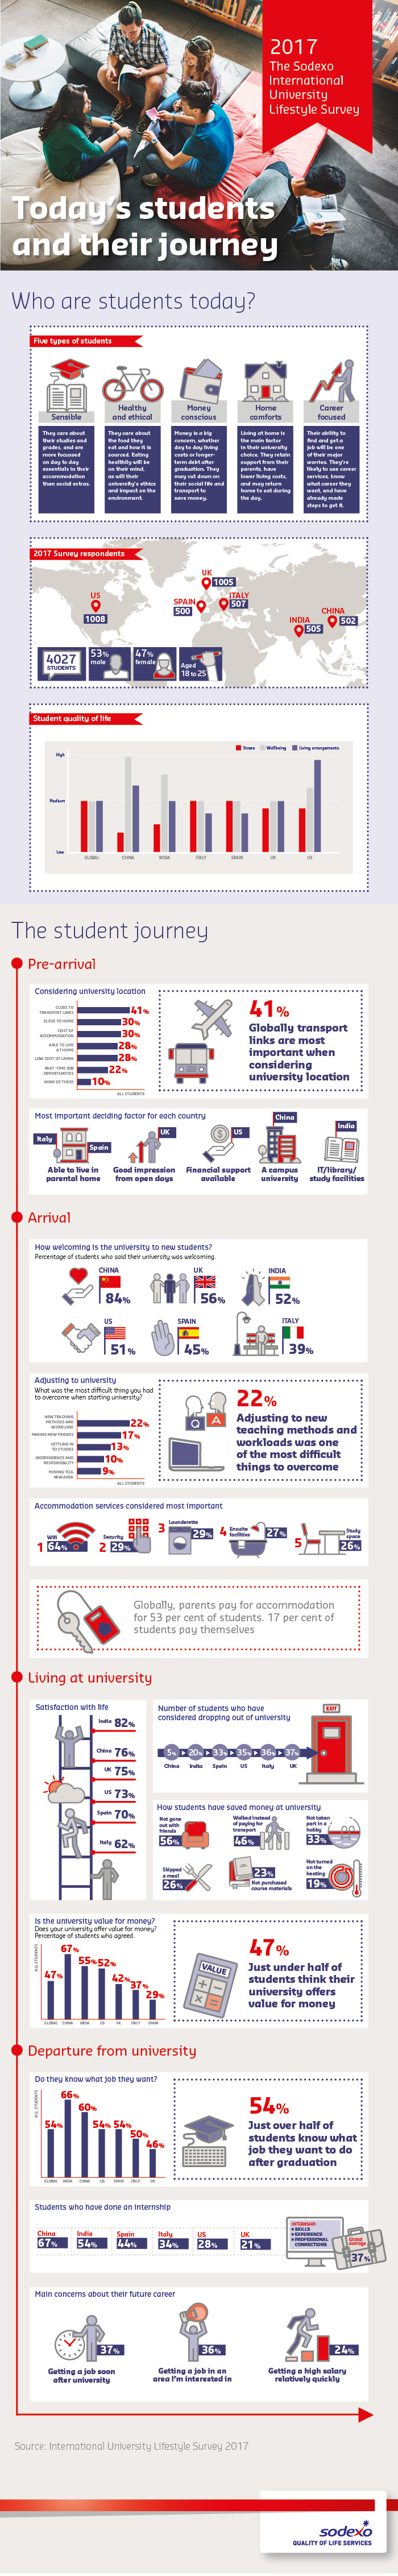 Sodexo International University Lifestyle Survey 2017 Infographic